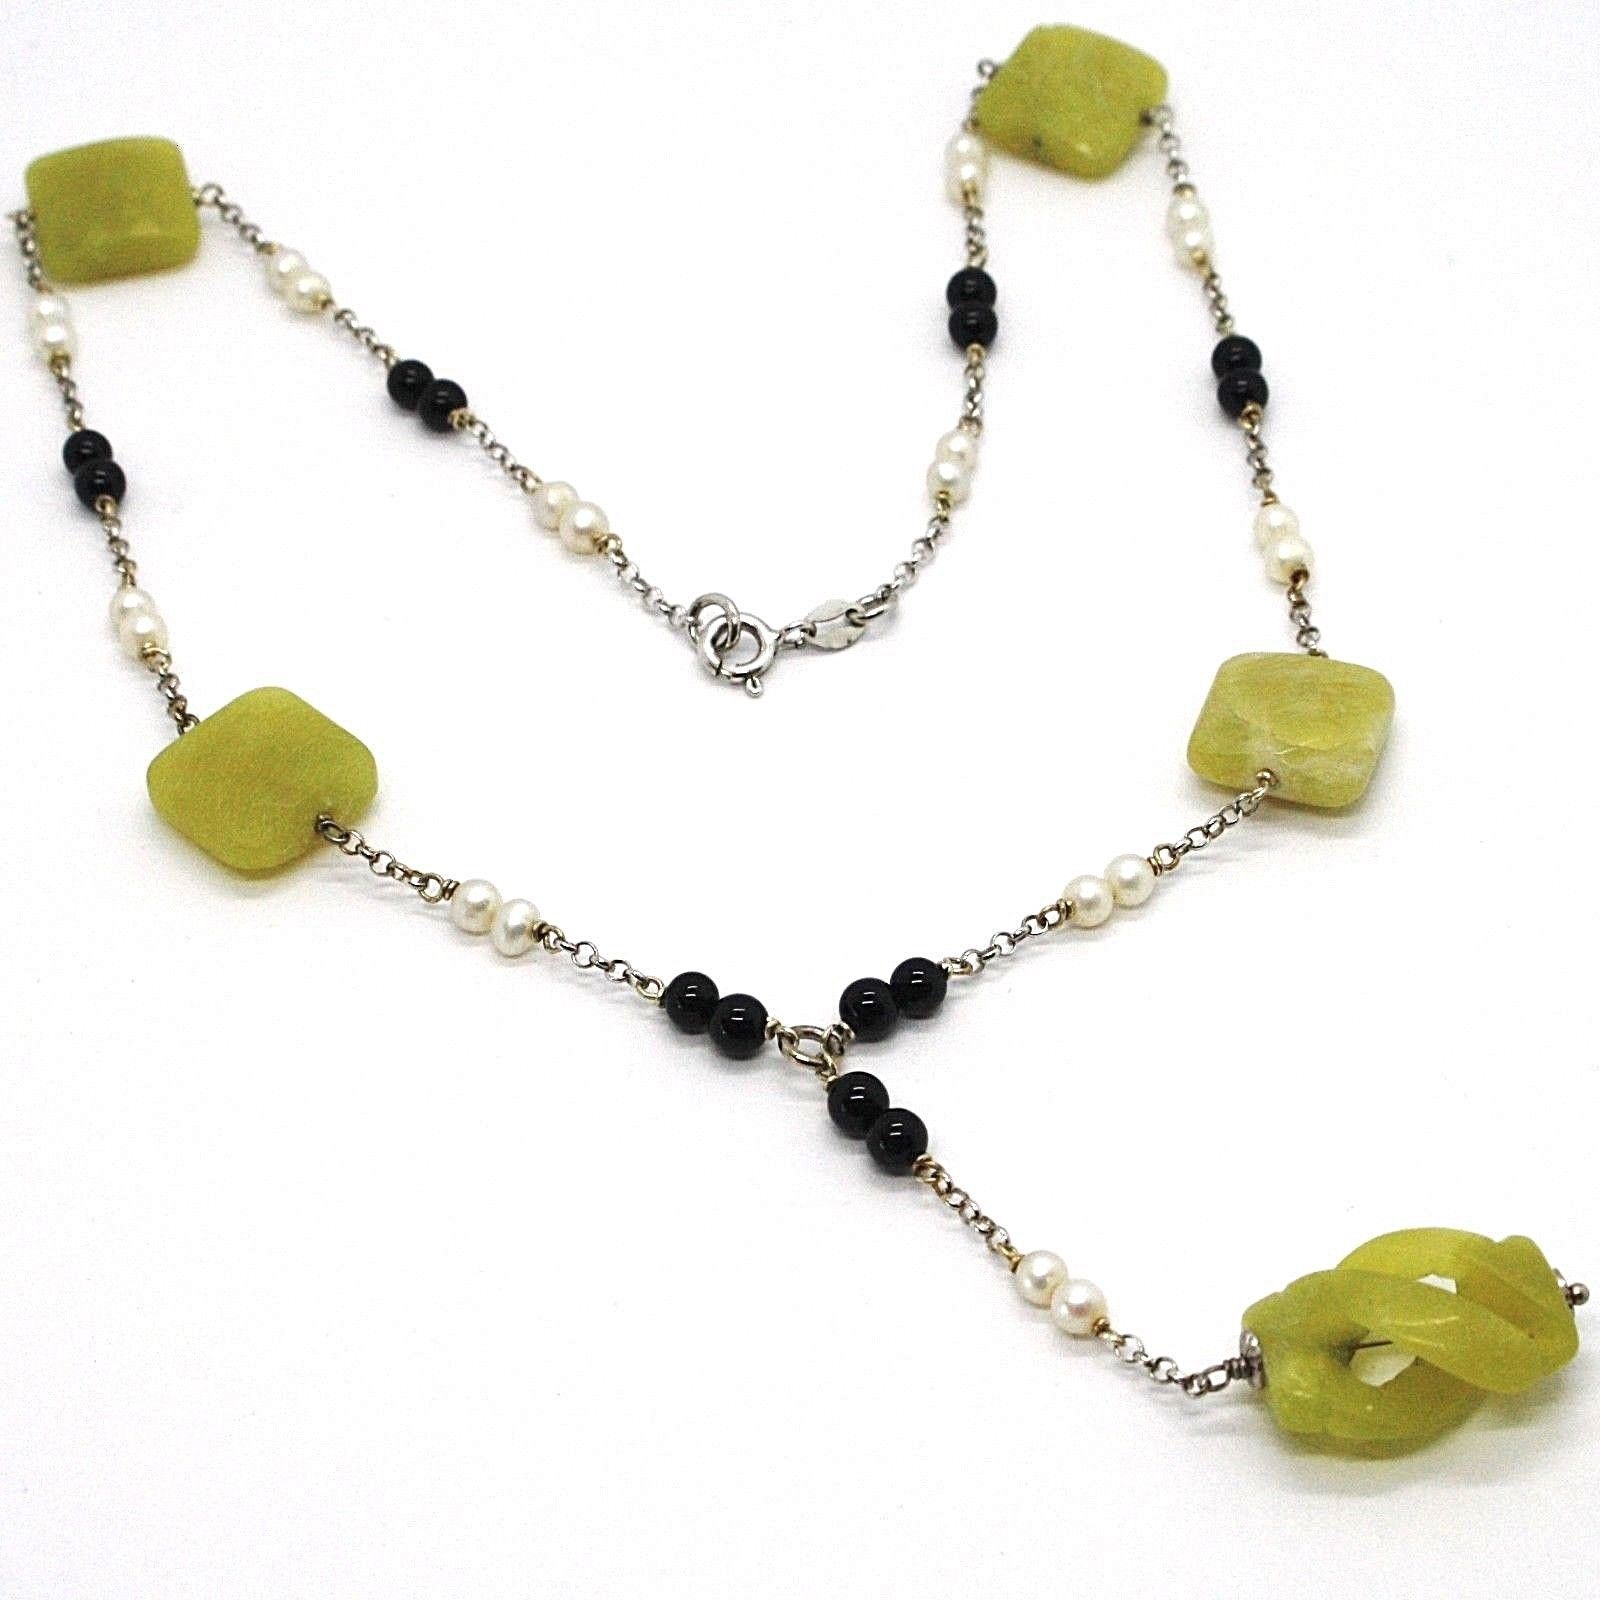 SILVER 925 NECKLACE, ONYX BLACK, JASPER GREEN, PEARLS, WITH HANGING CHARM